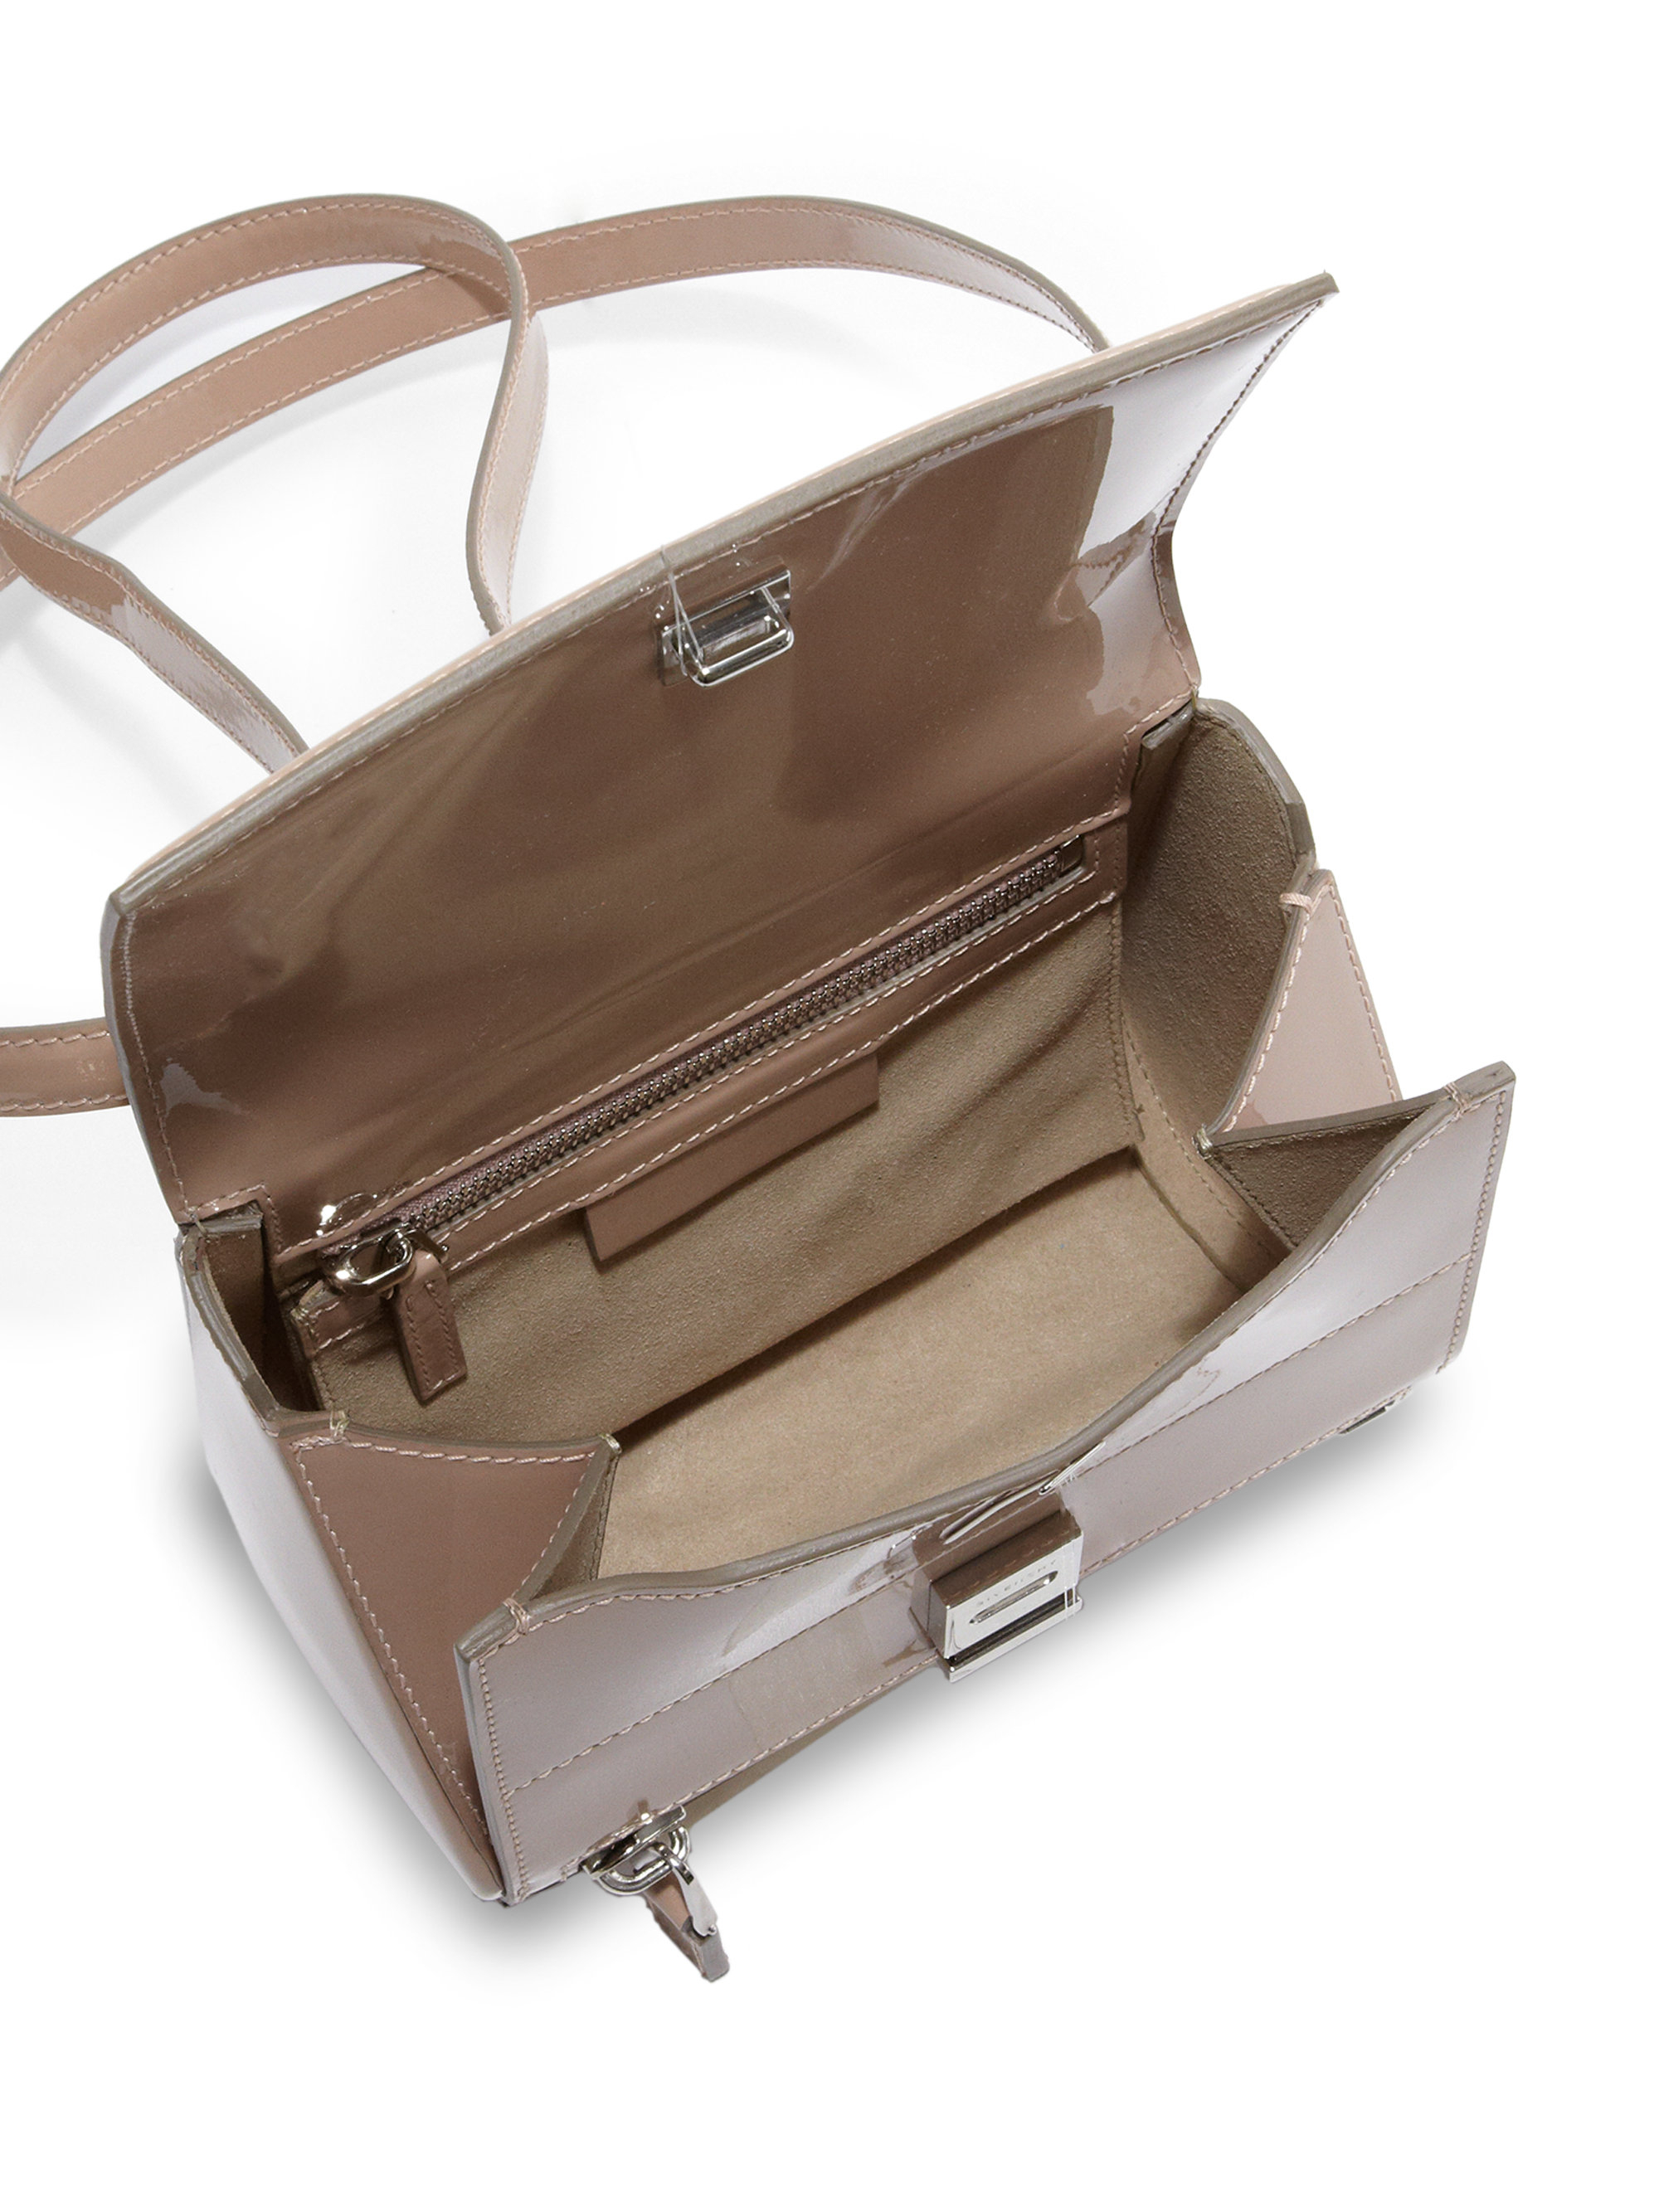 Gallery. Previously sold at: Saks Fifth Avenue · Women's Givenchy Pandora  Women's Box Bags